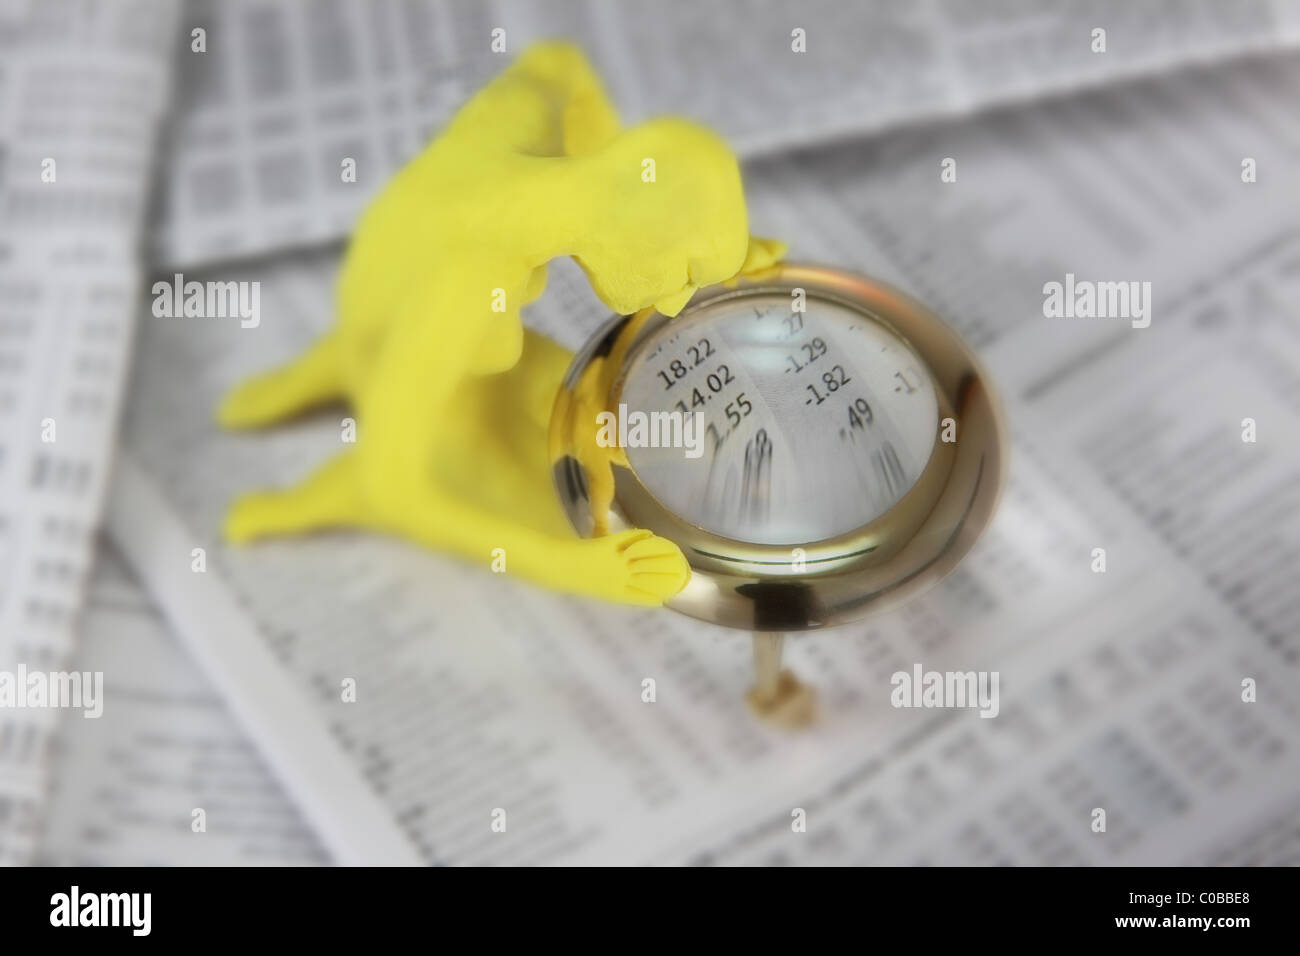 yellow plasticine figurine looking through magnifying glass at newspaper stock markets - Stock Image